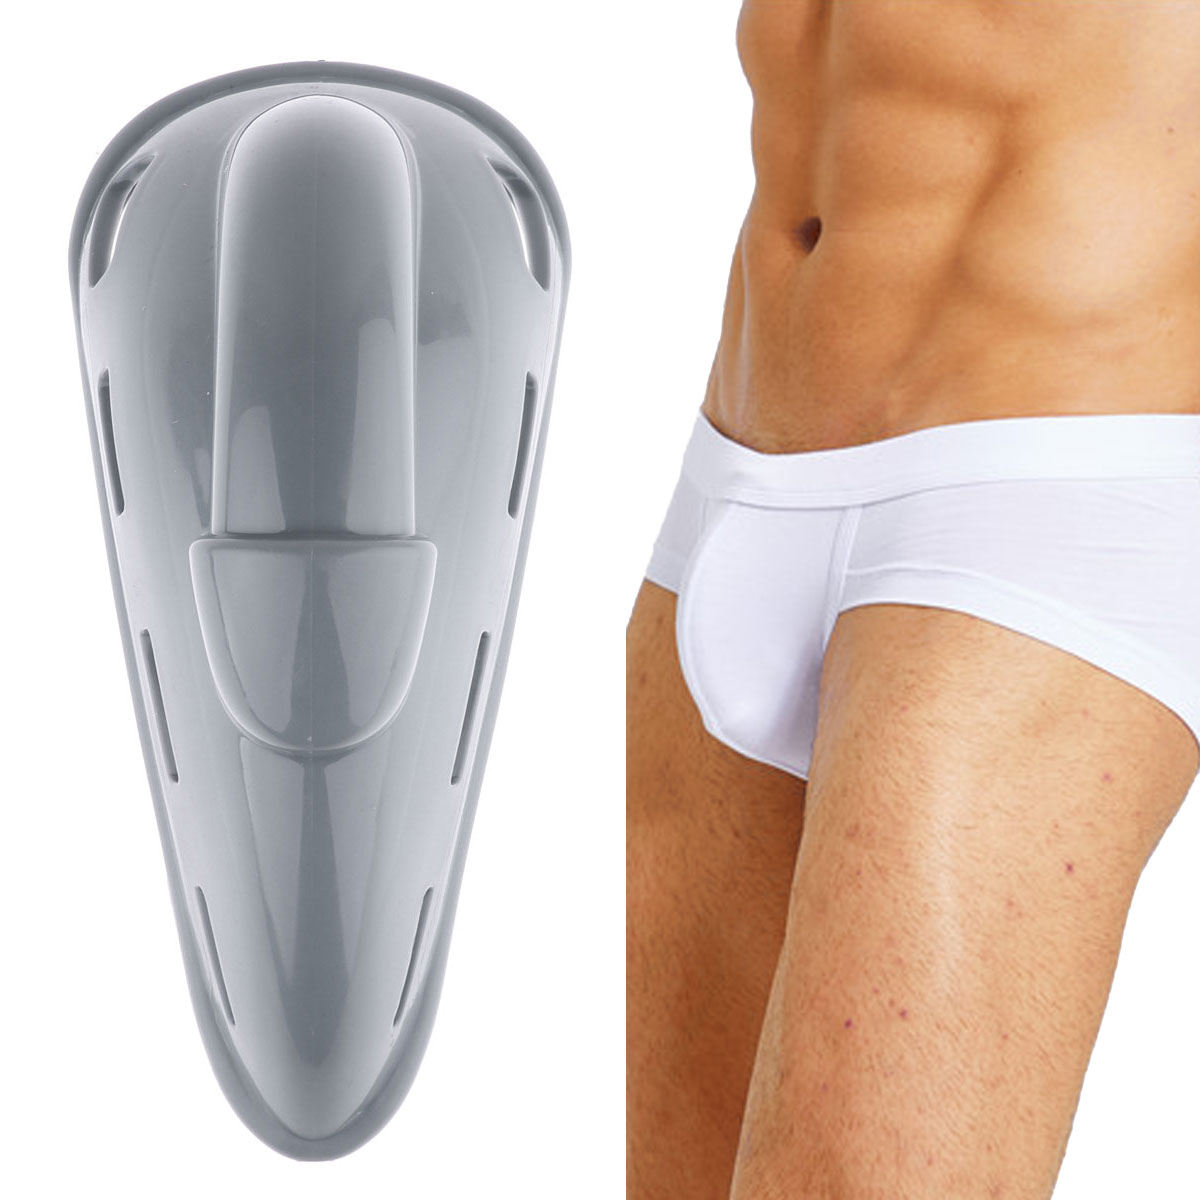 741300622c PP Silicone Cup Enhancer Men Enlarge Penis Pouch Protection Pad Swimwear  Briefs Removable Pads Inner Cushion